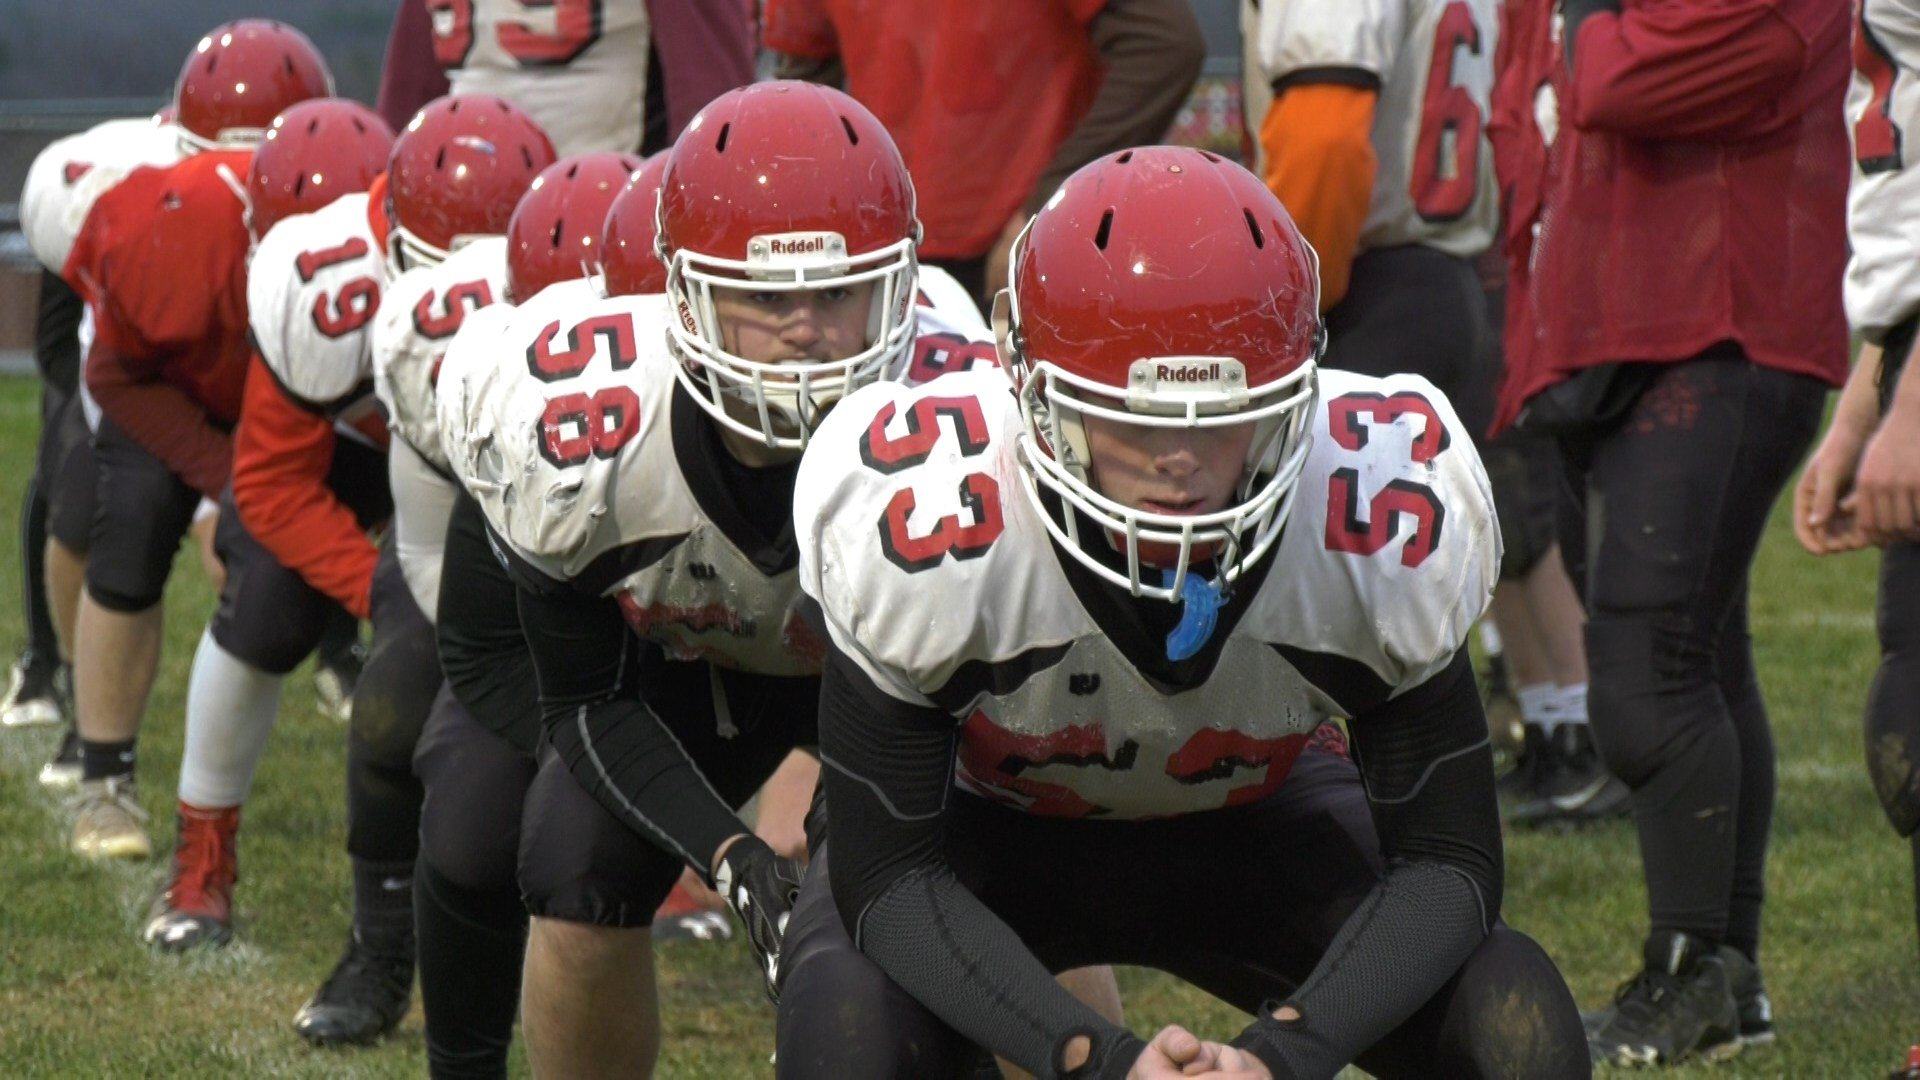 Riverheads is playing in the Class 1 state title game for the third year in a row